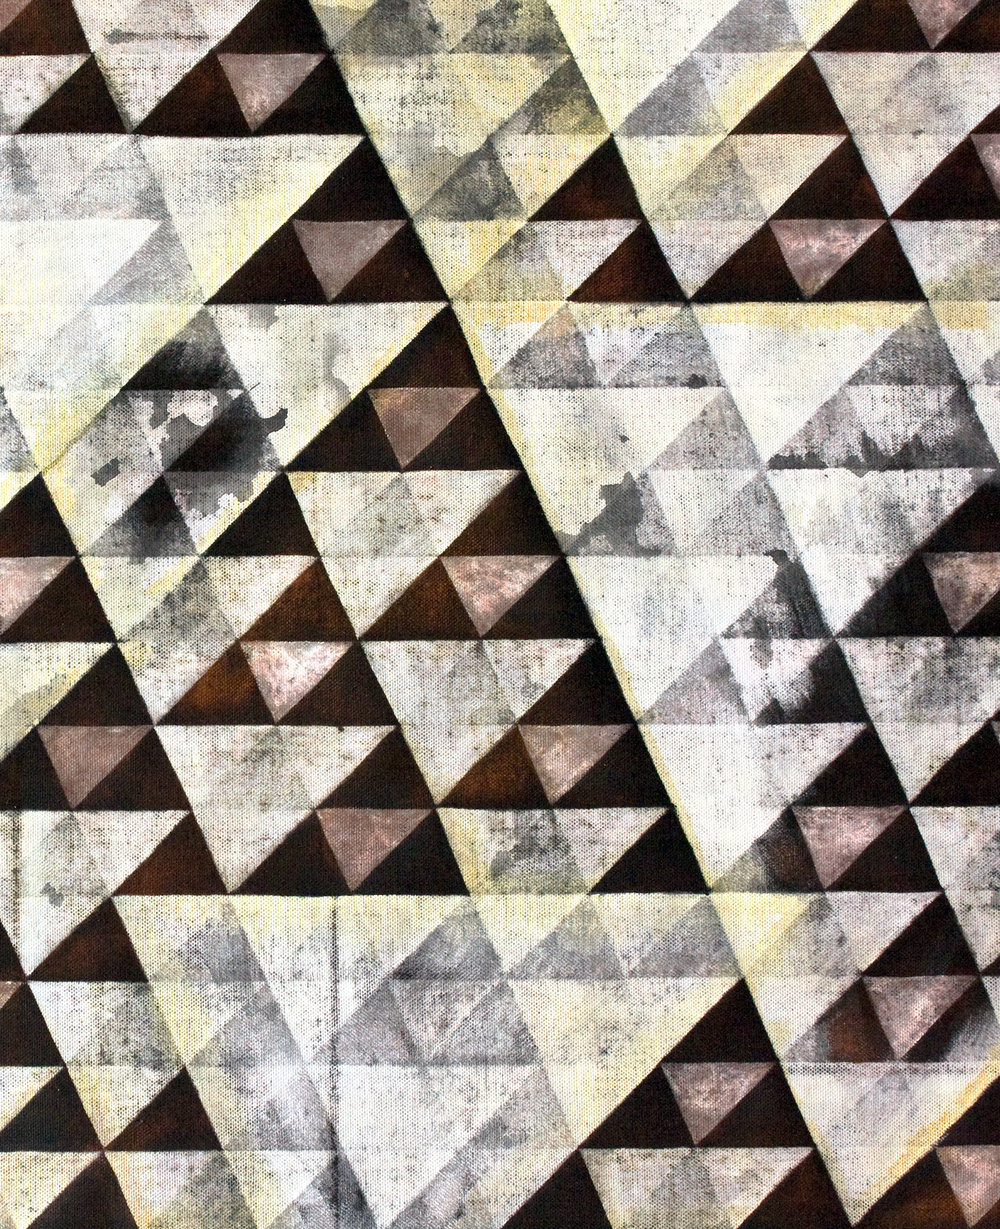 Untitled Triangles IV (Detail)